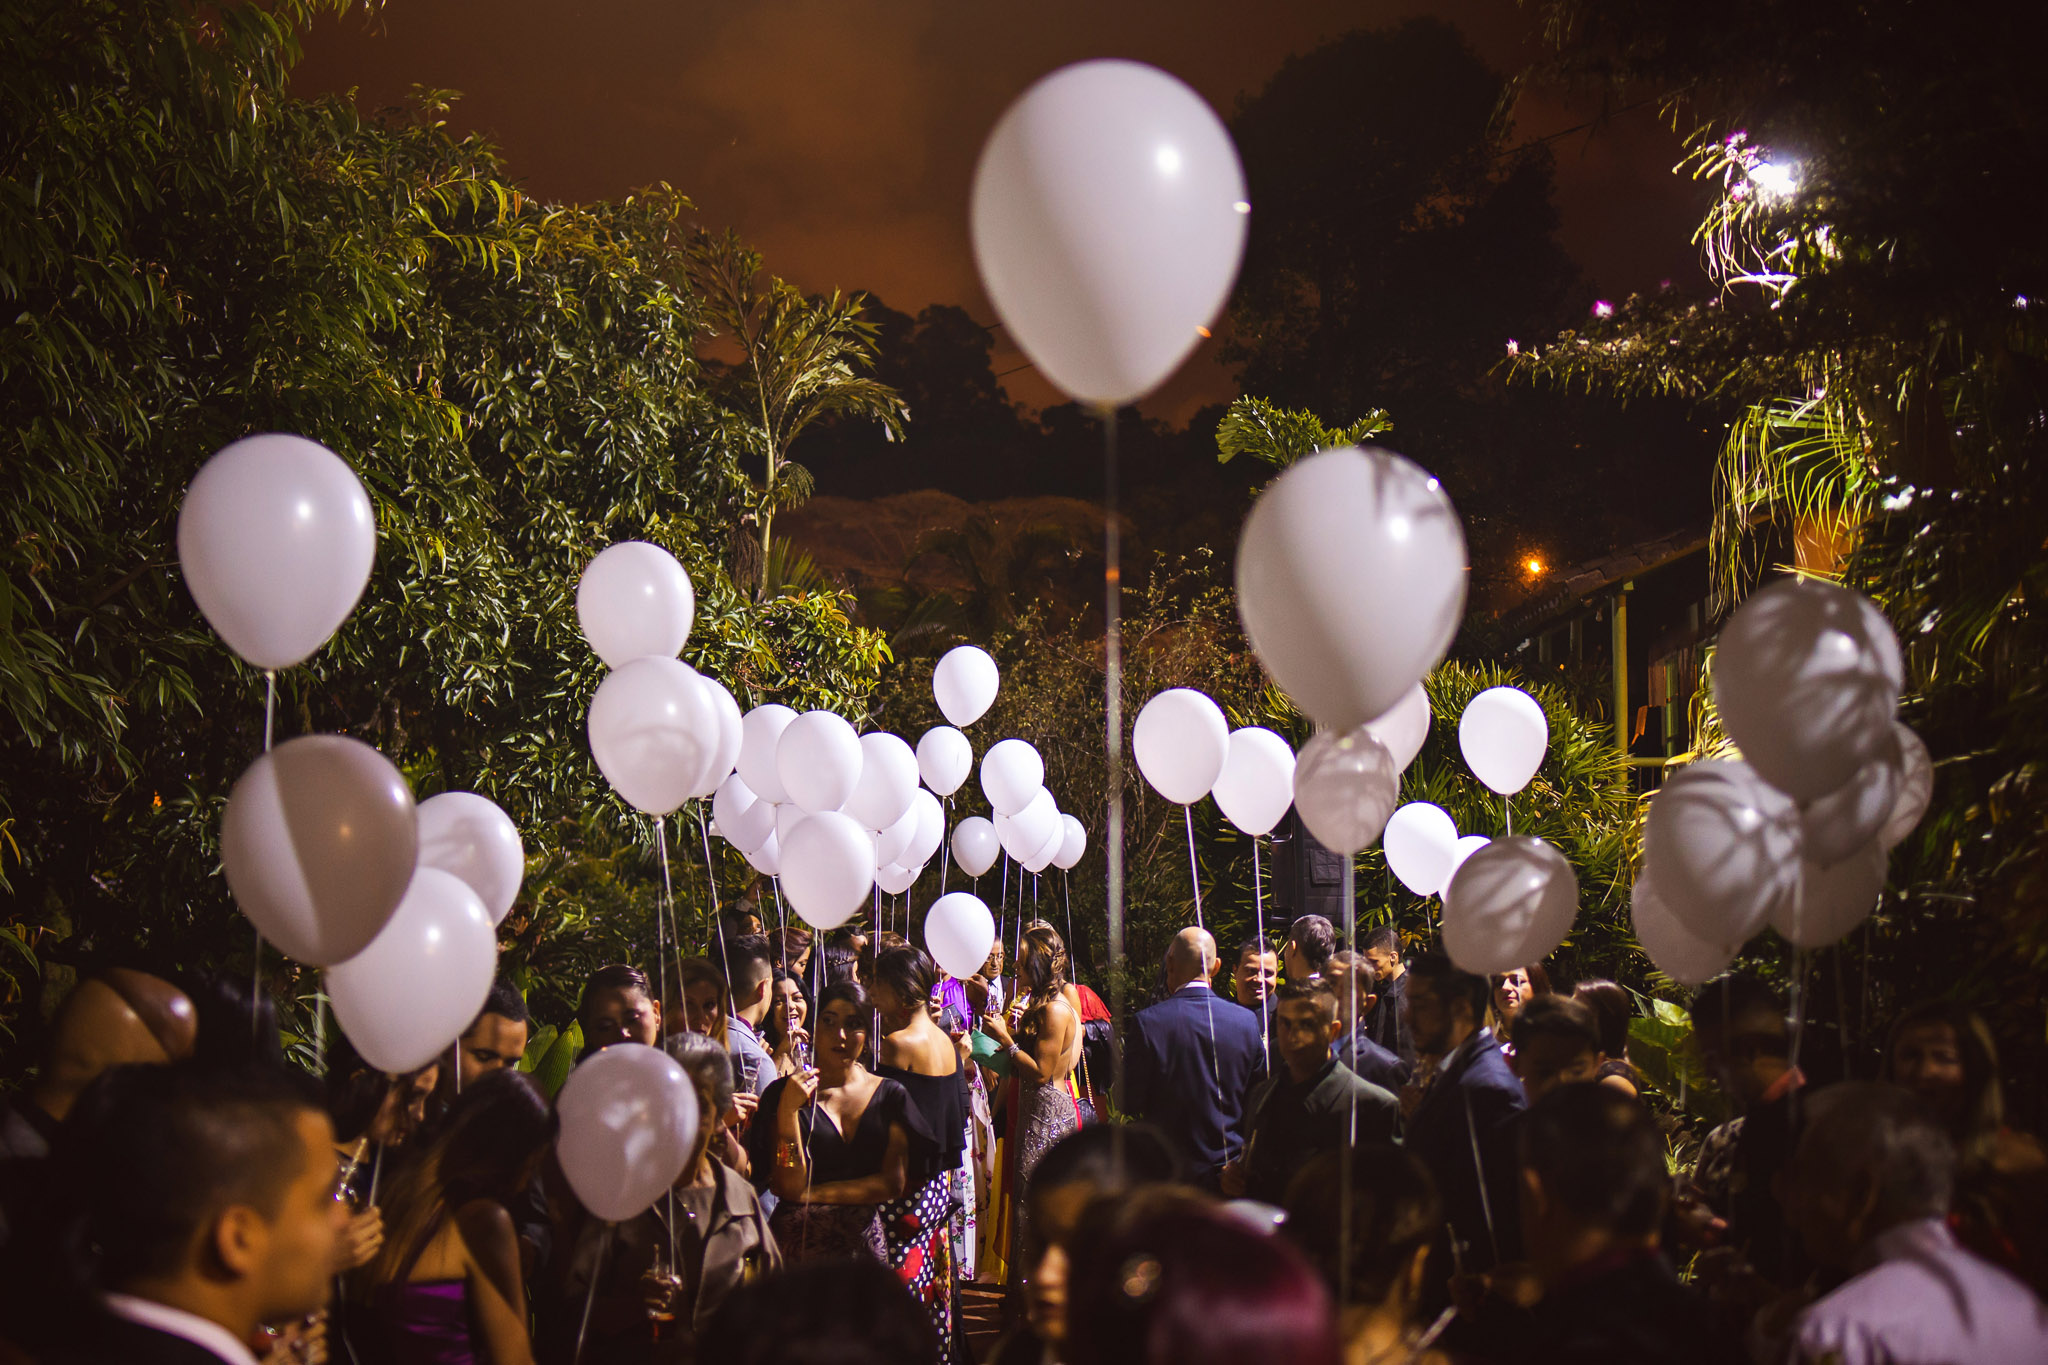 wedding-travellers-destination-wedding-photography-colombia-medellin-chuscalito-balloons-white